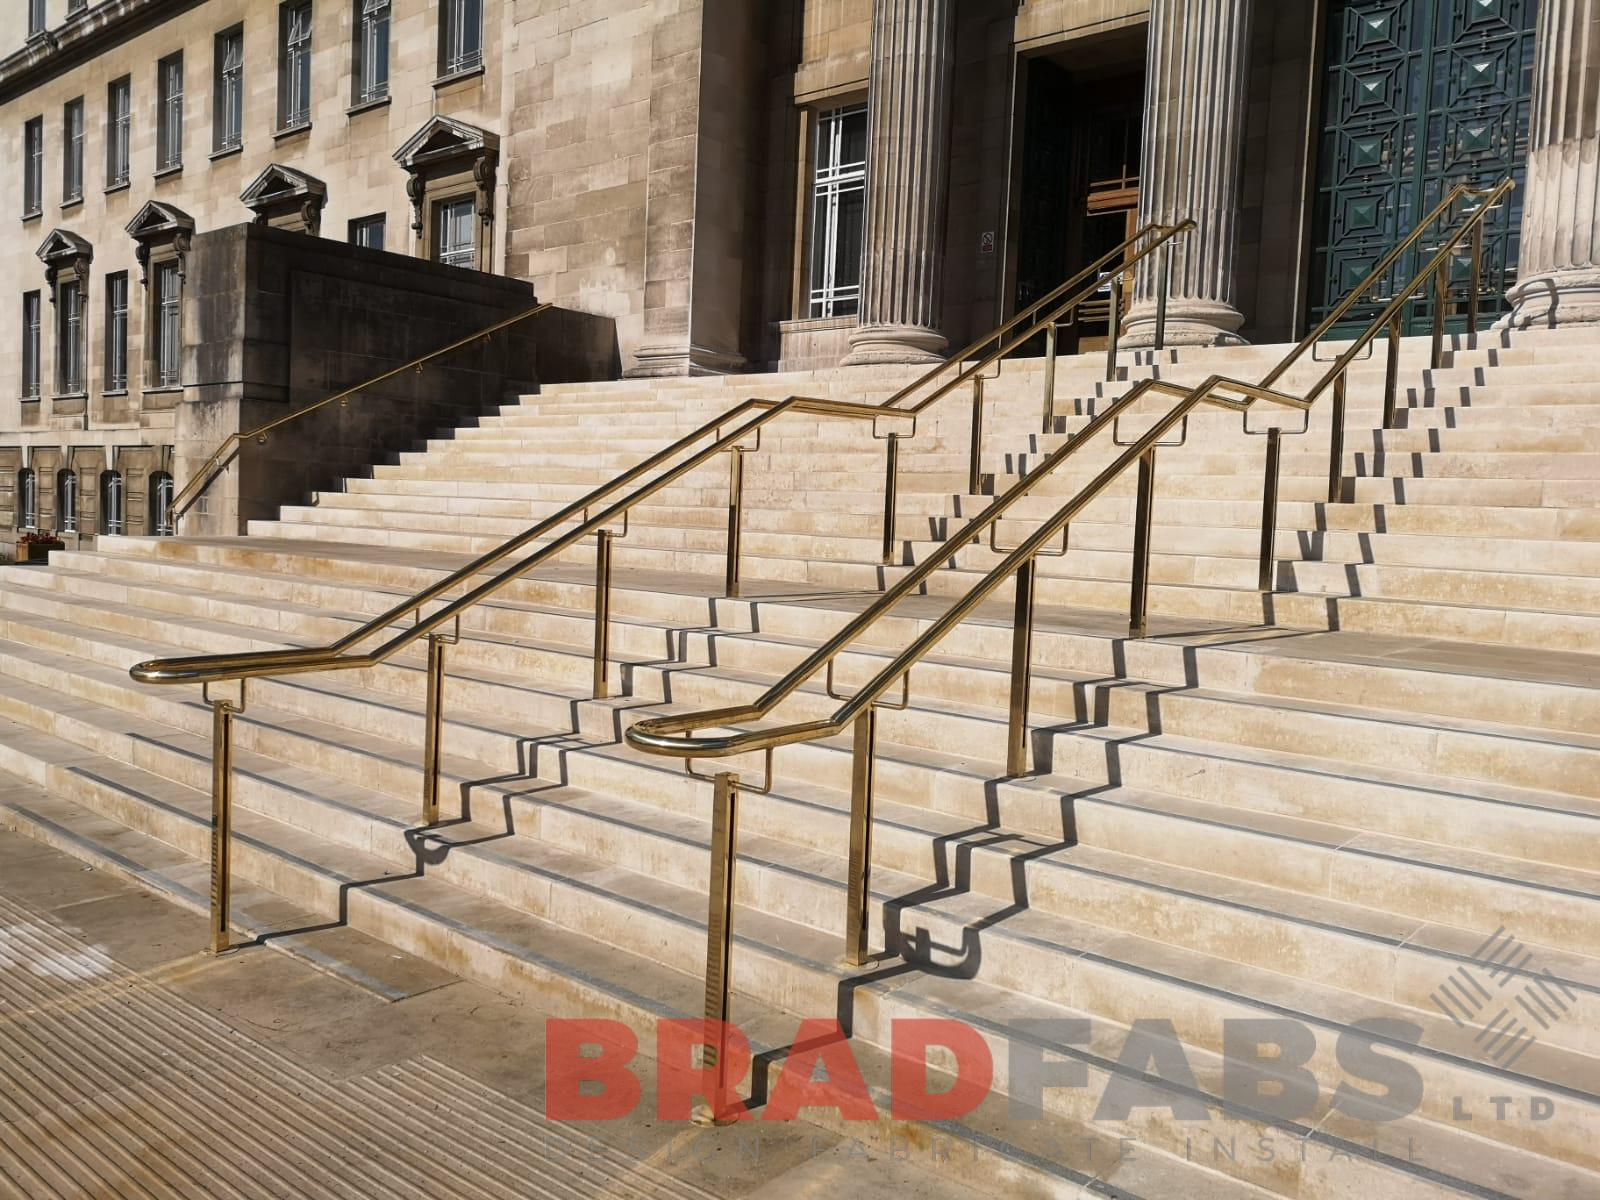 Large bespoke brass handrails and balustrade by Bradfabs